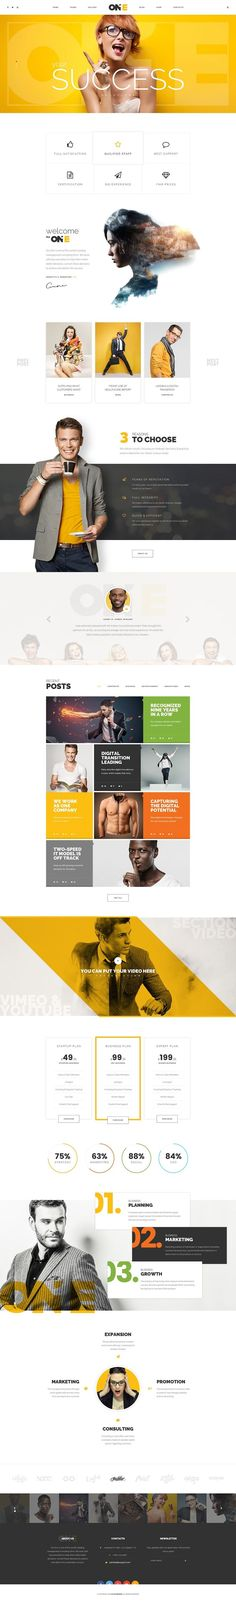 Best of WordPress 20